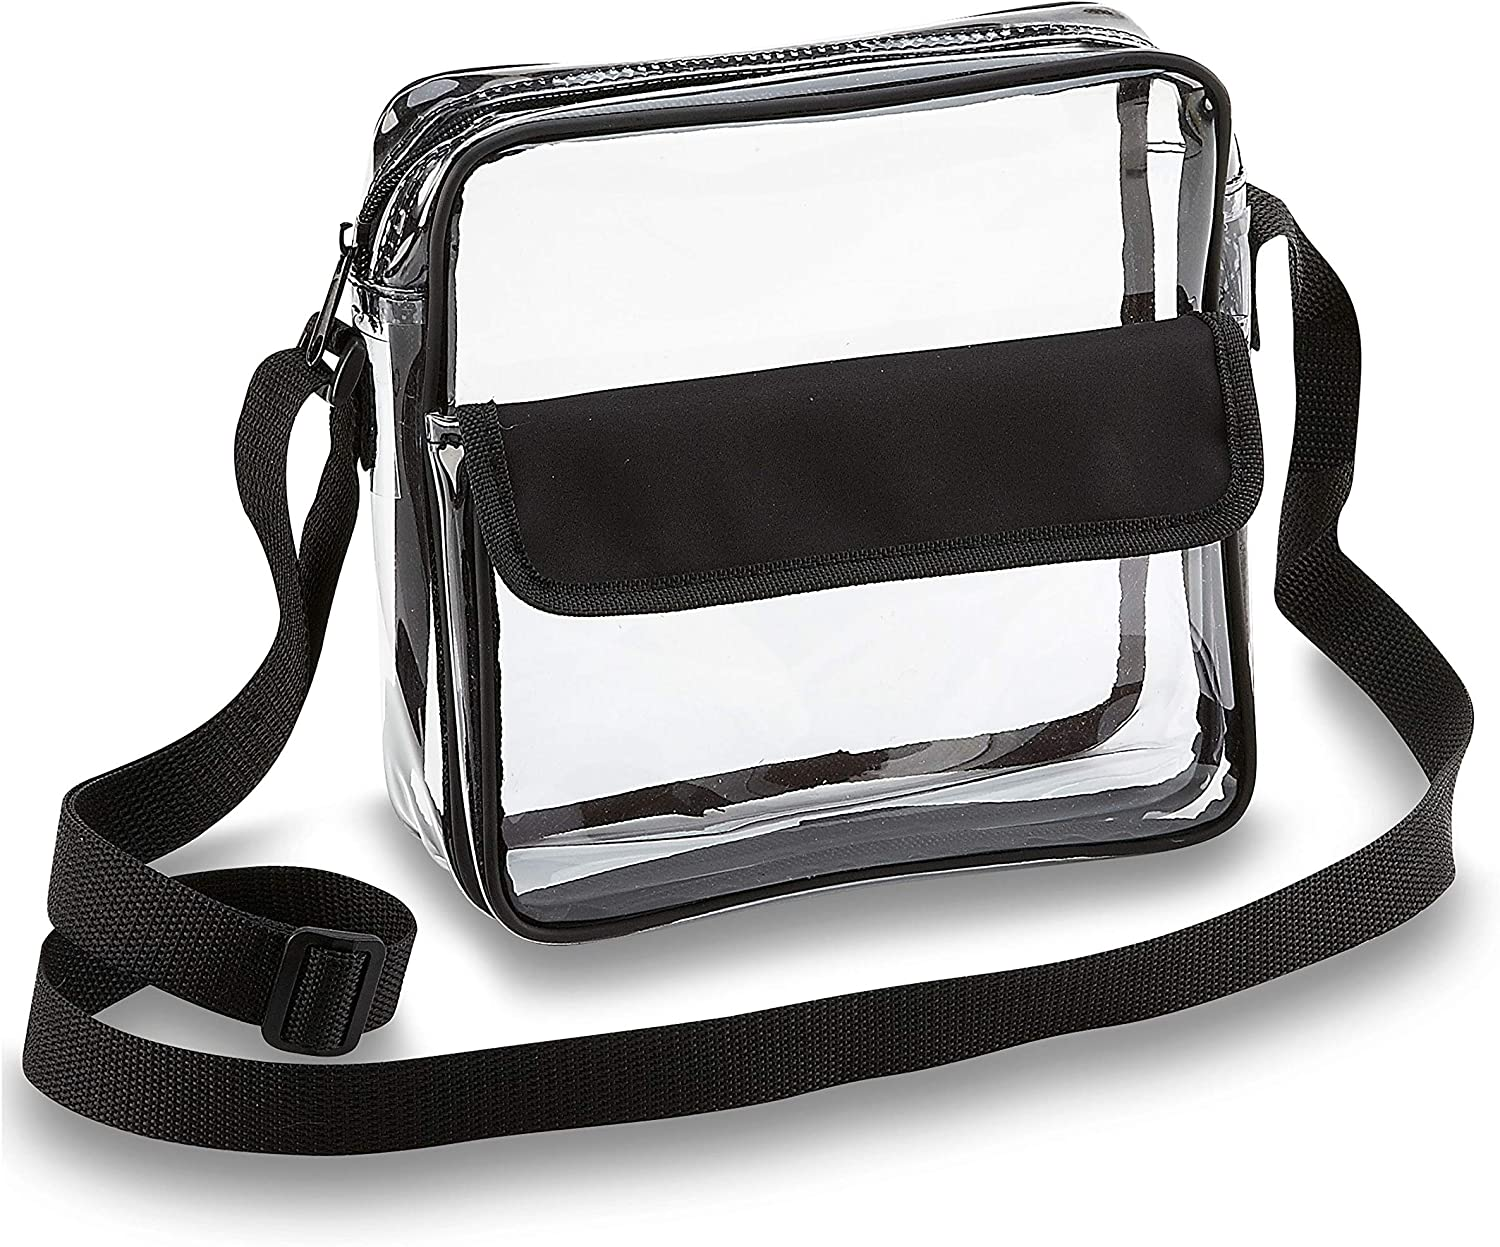 Clear Crossbody Messenger Shoulder Bag with Zipper Closure Adjustable Strap NFL Stadium Approved Clear Bags For Women and Men